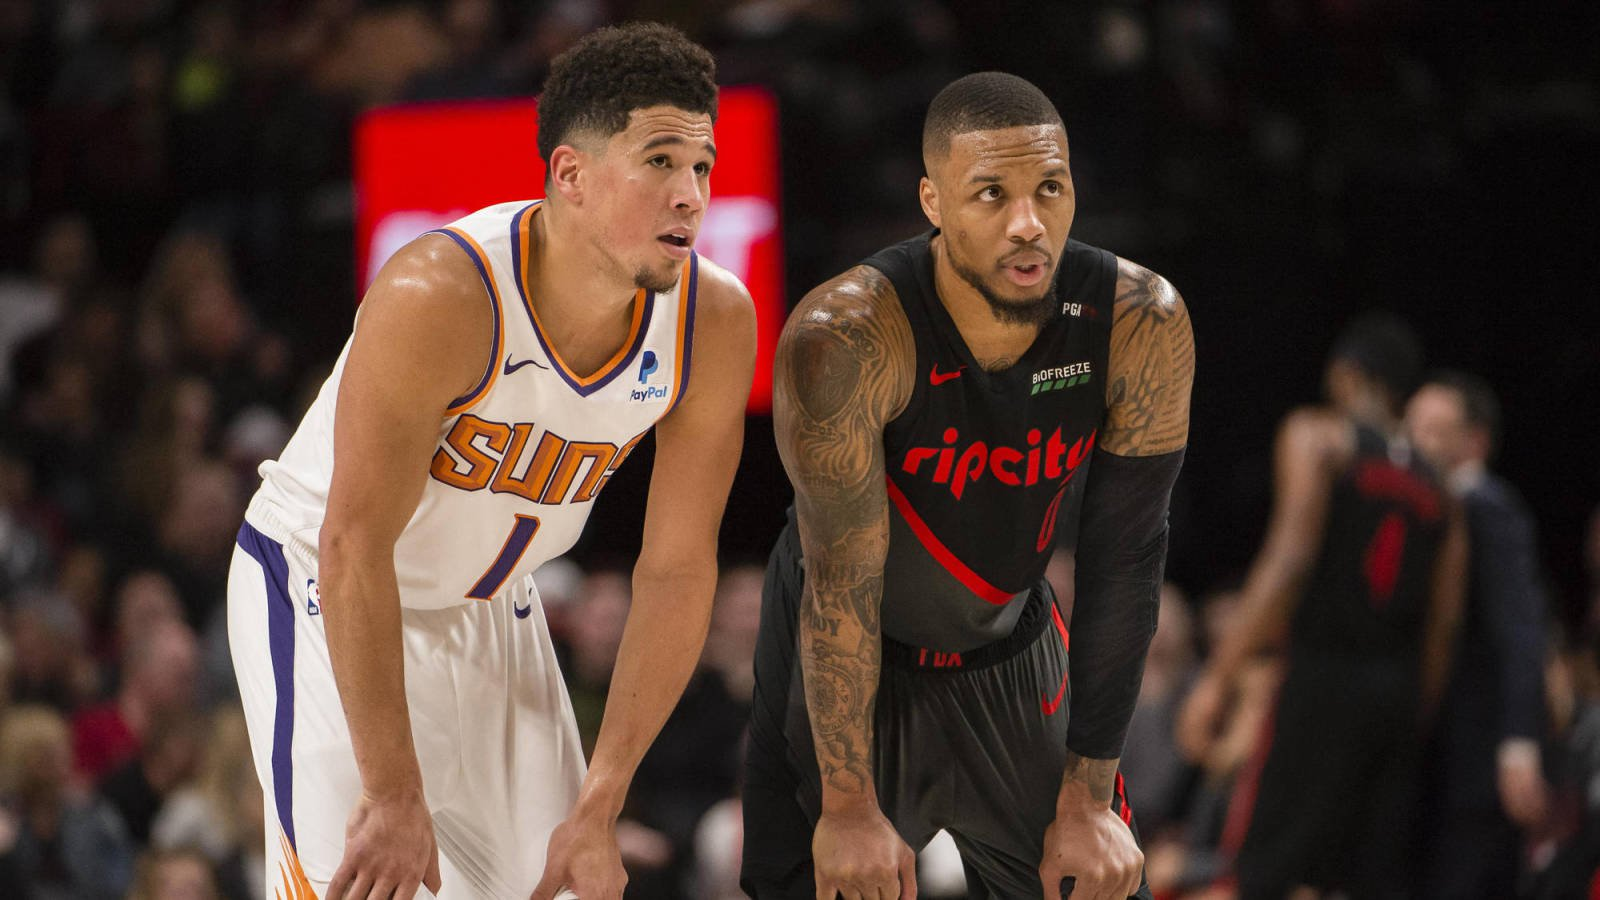 Mar 9, 2019; Portland, OR, USA; Phoenix Suns guard Devin Booker (1) and Portland Trail Blazers guard Damian Lillard (0) talk during a break in action during the second half at Moda Center. The Trail Blazers beat the Suns 127-120. Mandatory Credit: Troy Wayrynen-USA TODAY Sports